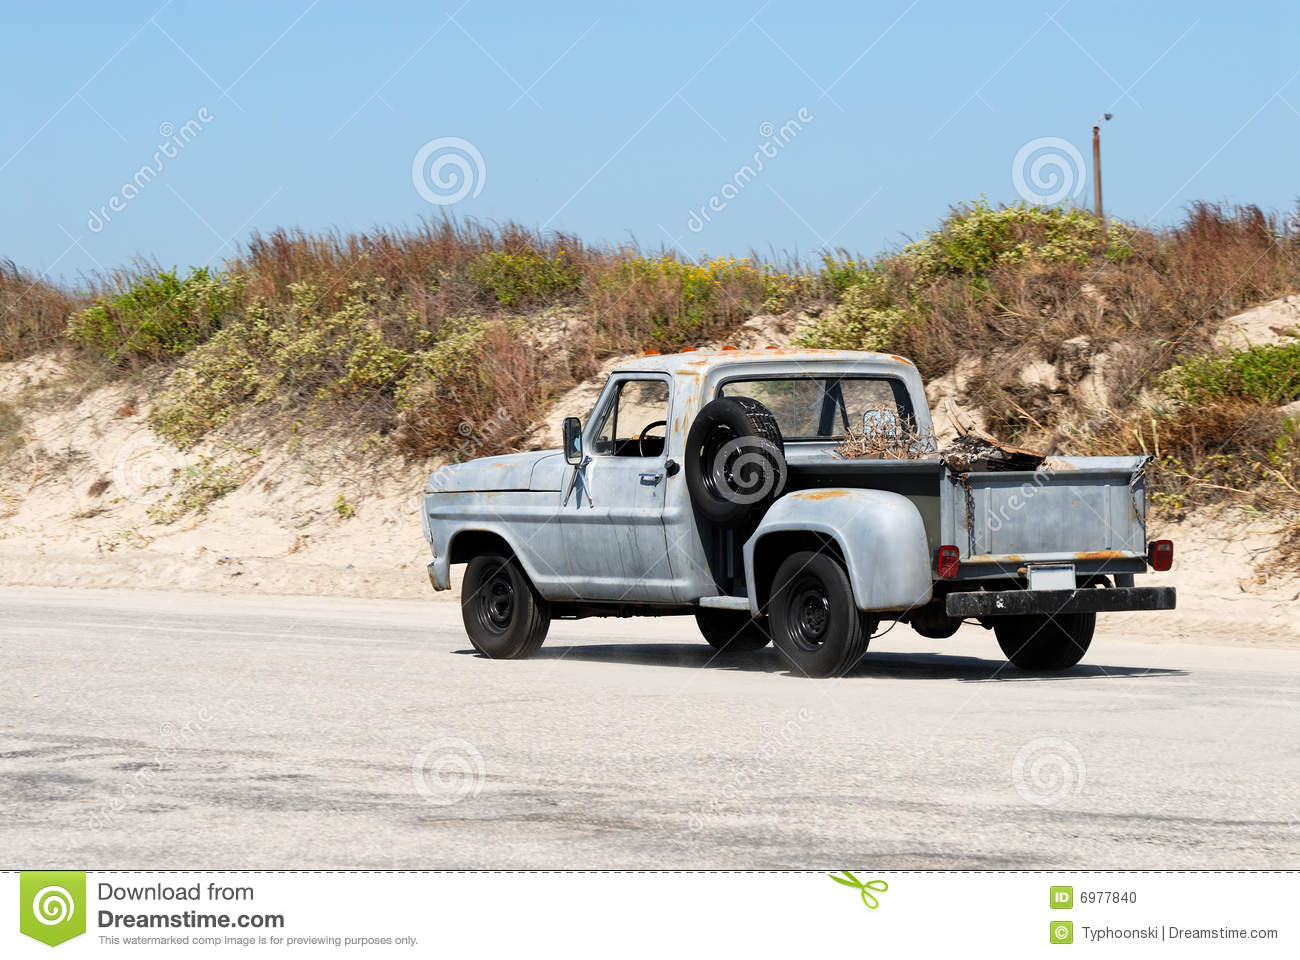 Old Pickup Truck Stock Photos - Royalty Free Images